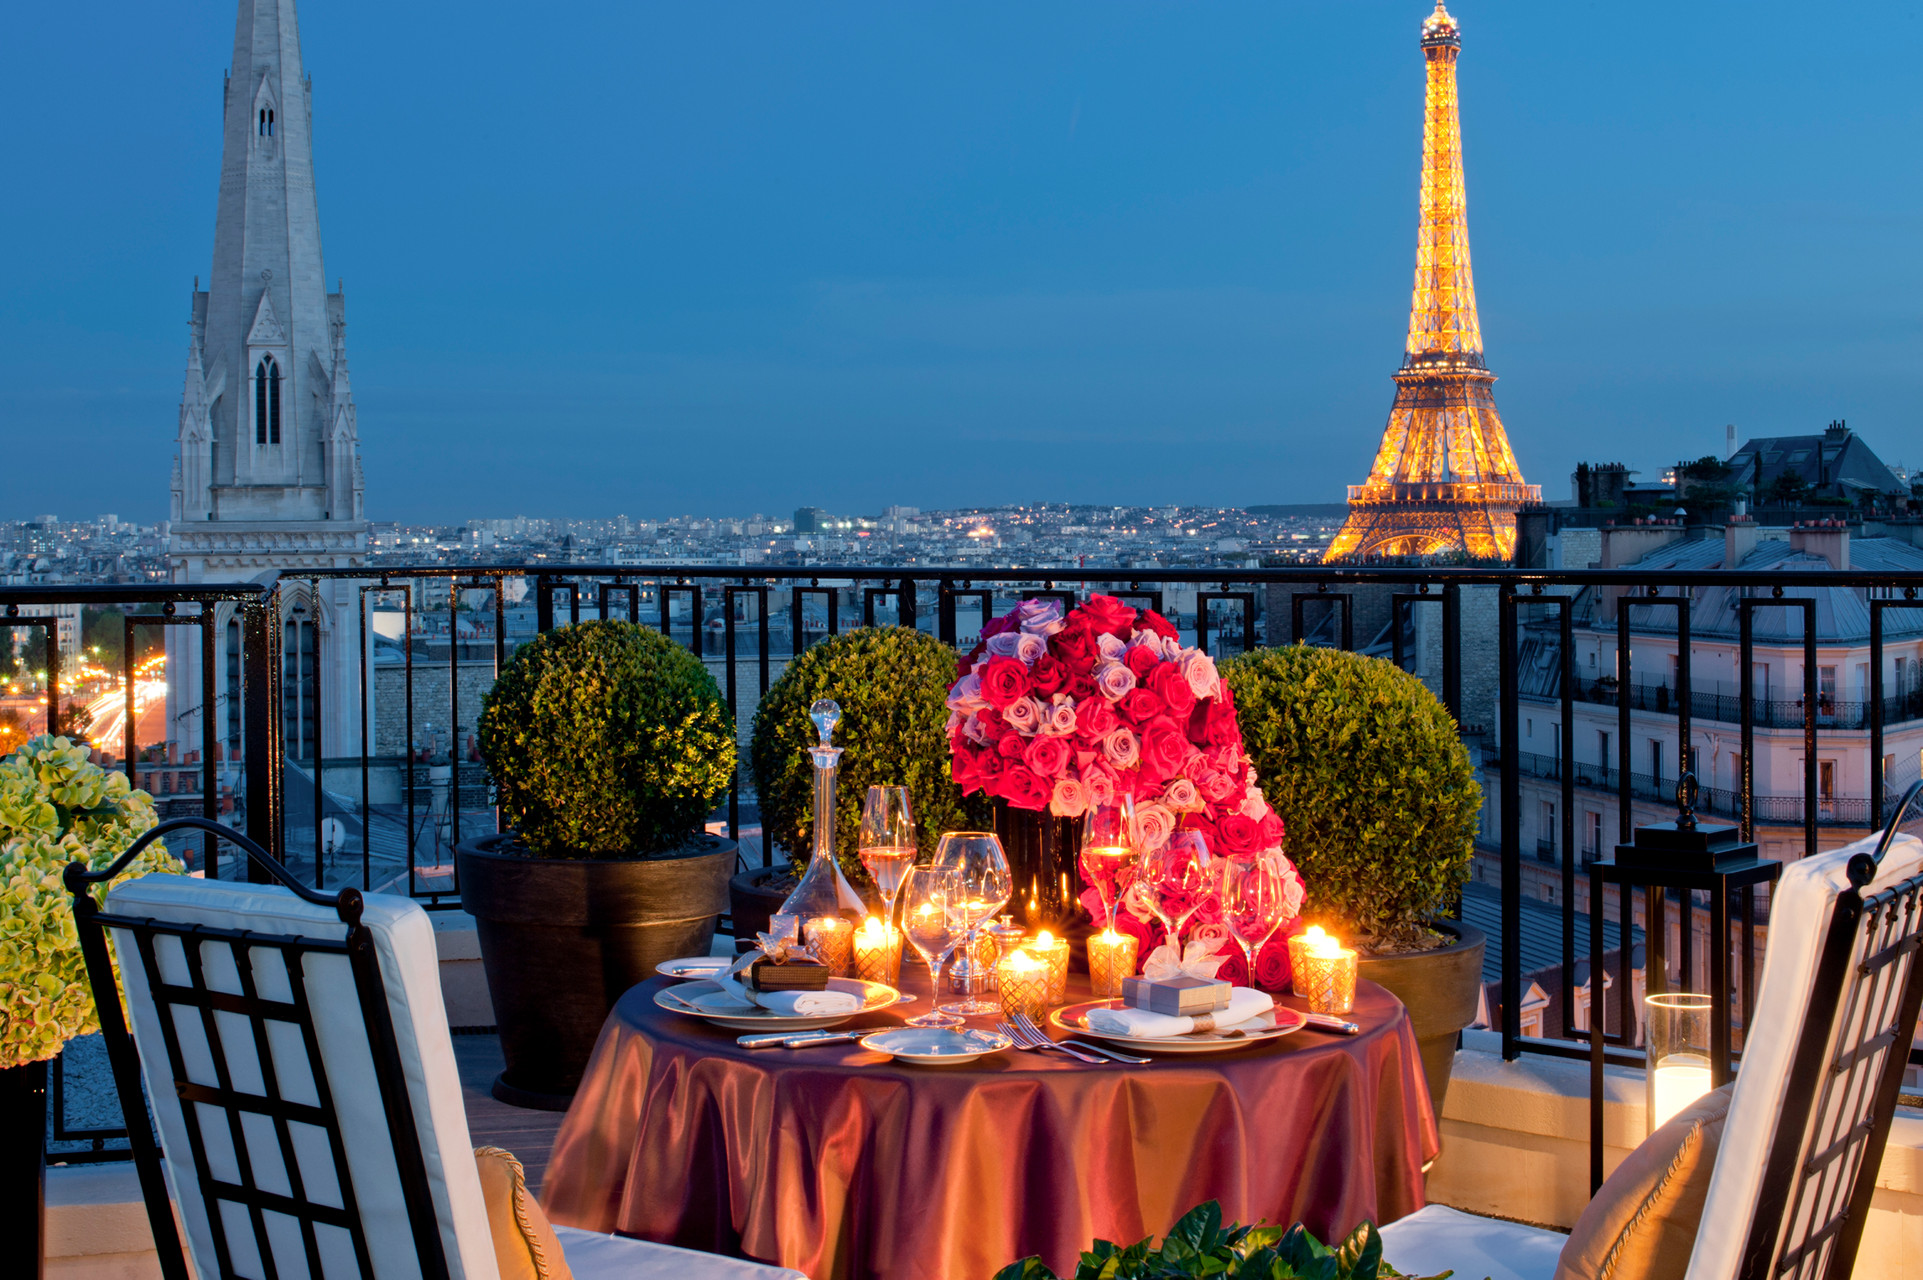 Luxury Travel: 5 Reasons Why Paris Should Be Your Next Destination the most luxurious train rides in the world The Most Luxurious Train Rides In The World luxury travel reasons why paris next destination valentines day the most luxurious train rides in the world The Most Luxurious Train Rides In The World luxury travel reasons why paris next destination valentines day